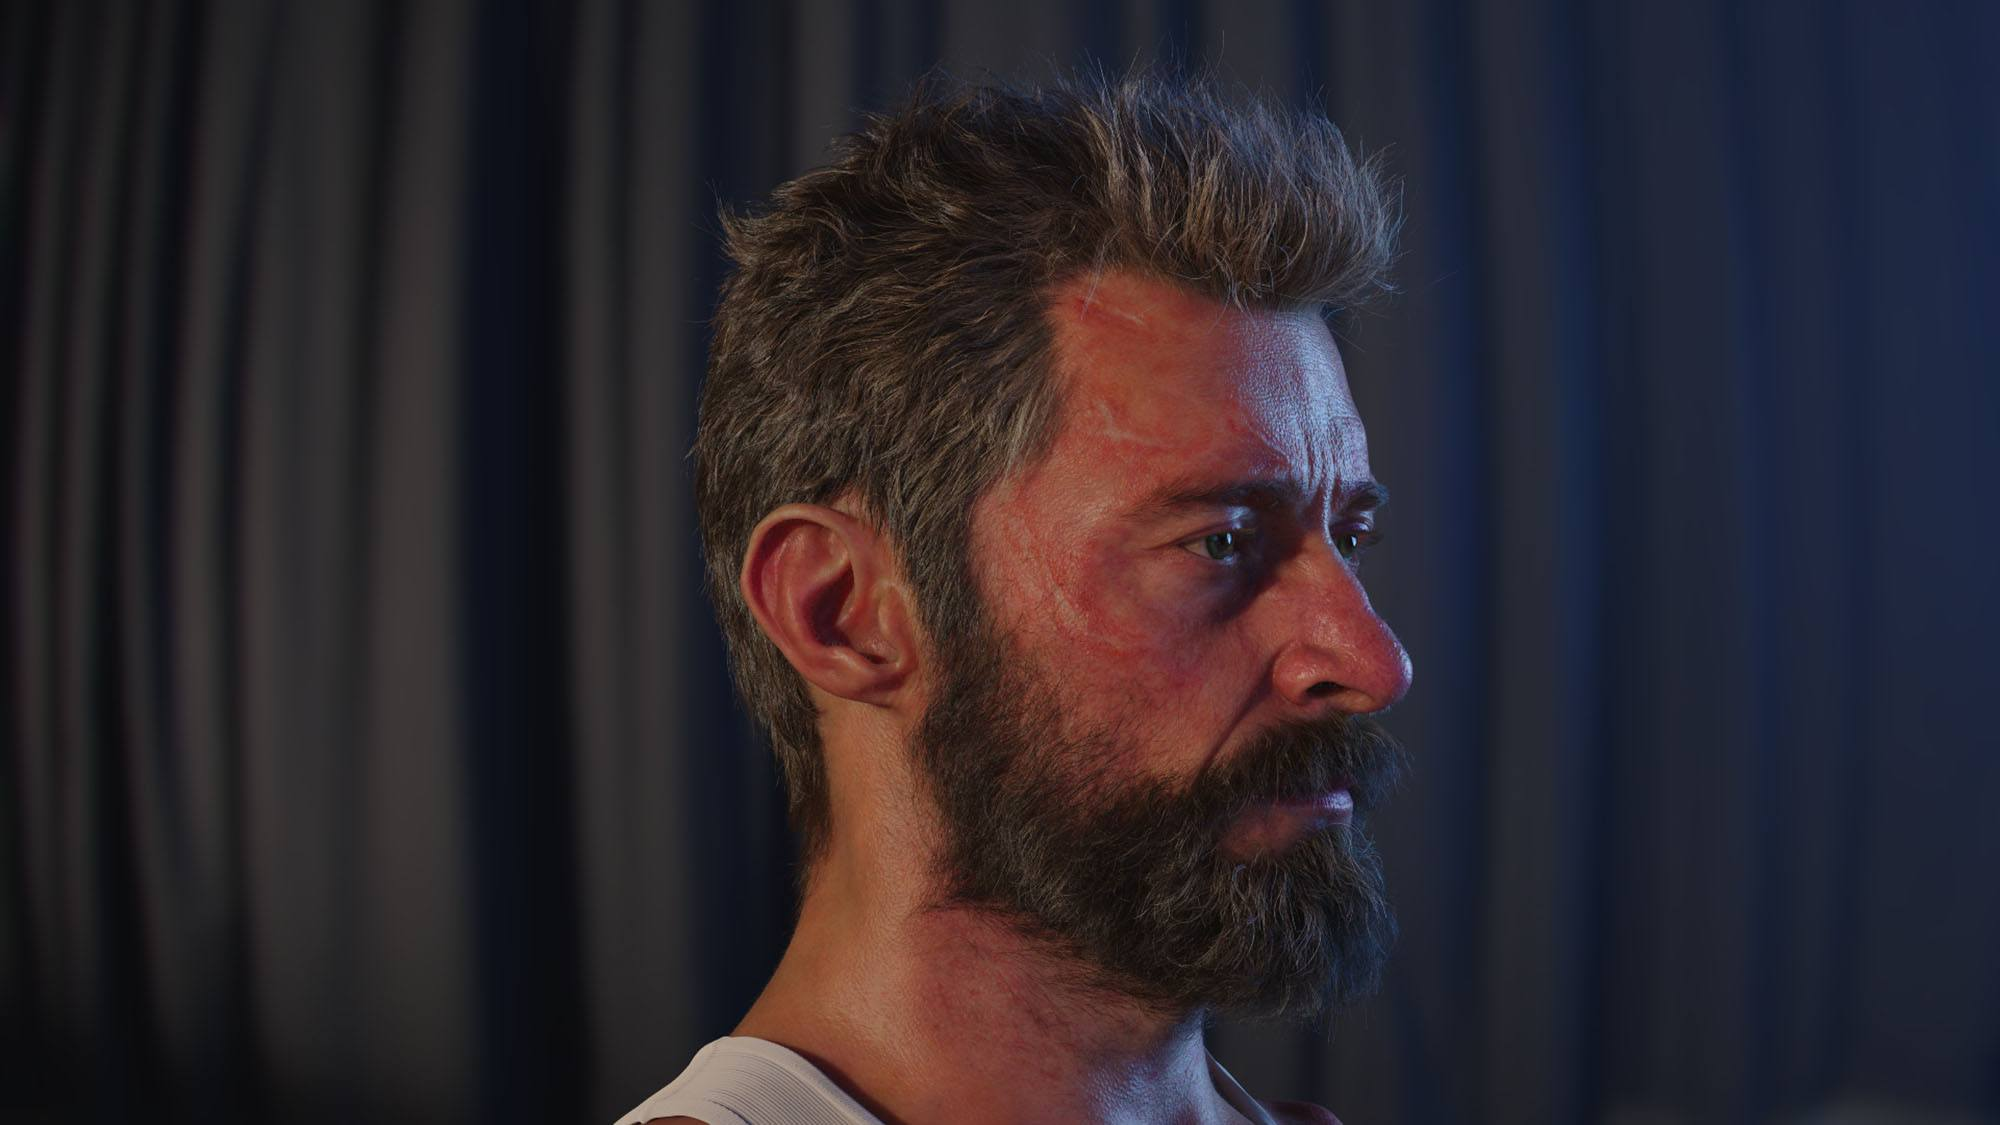 The digital double of Hugh Jackman's head (© 2017 Marvel. TM and © 2017 Twentieth Century Fox Film Corporation. All rights reserved. Not for sale or duplication.)